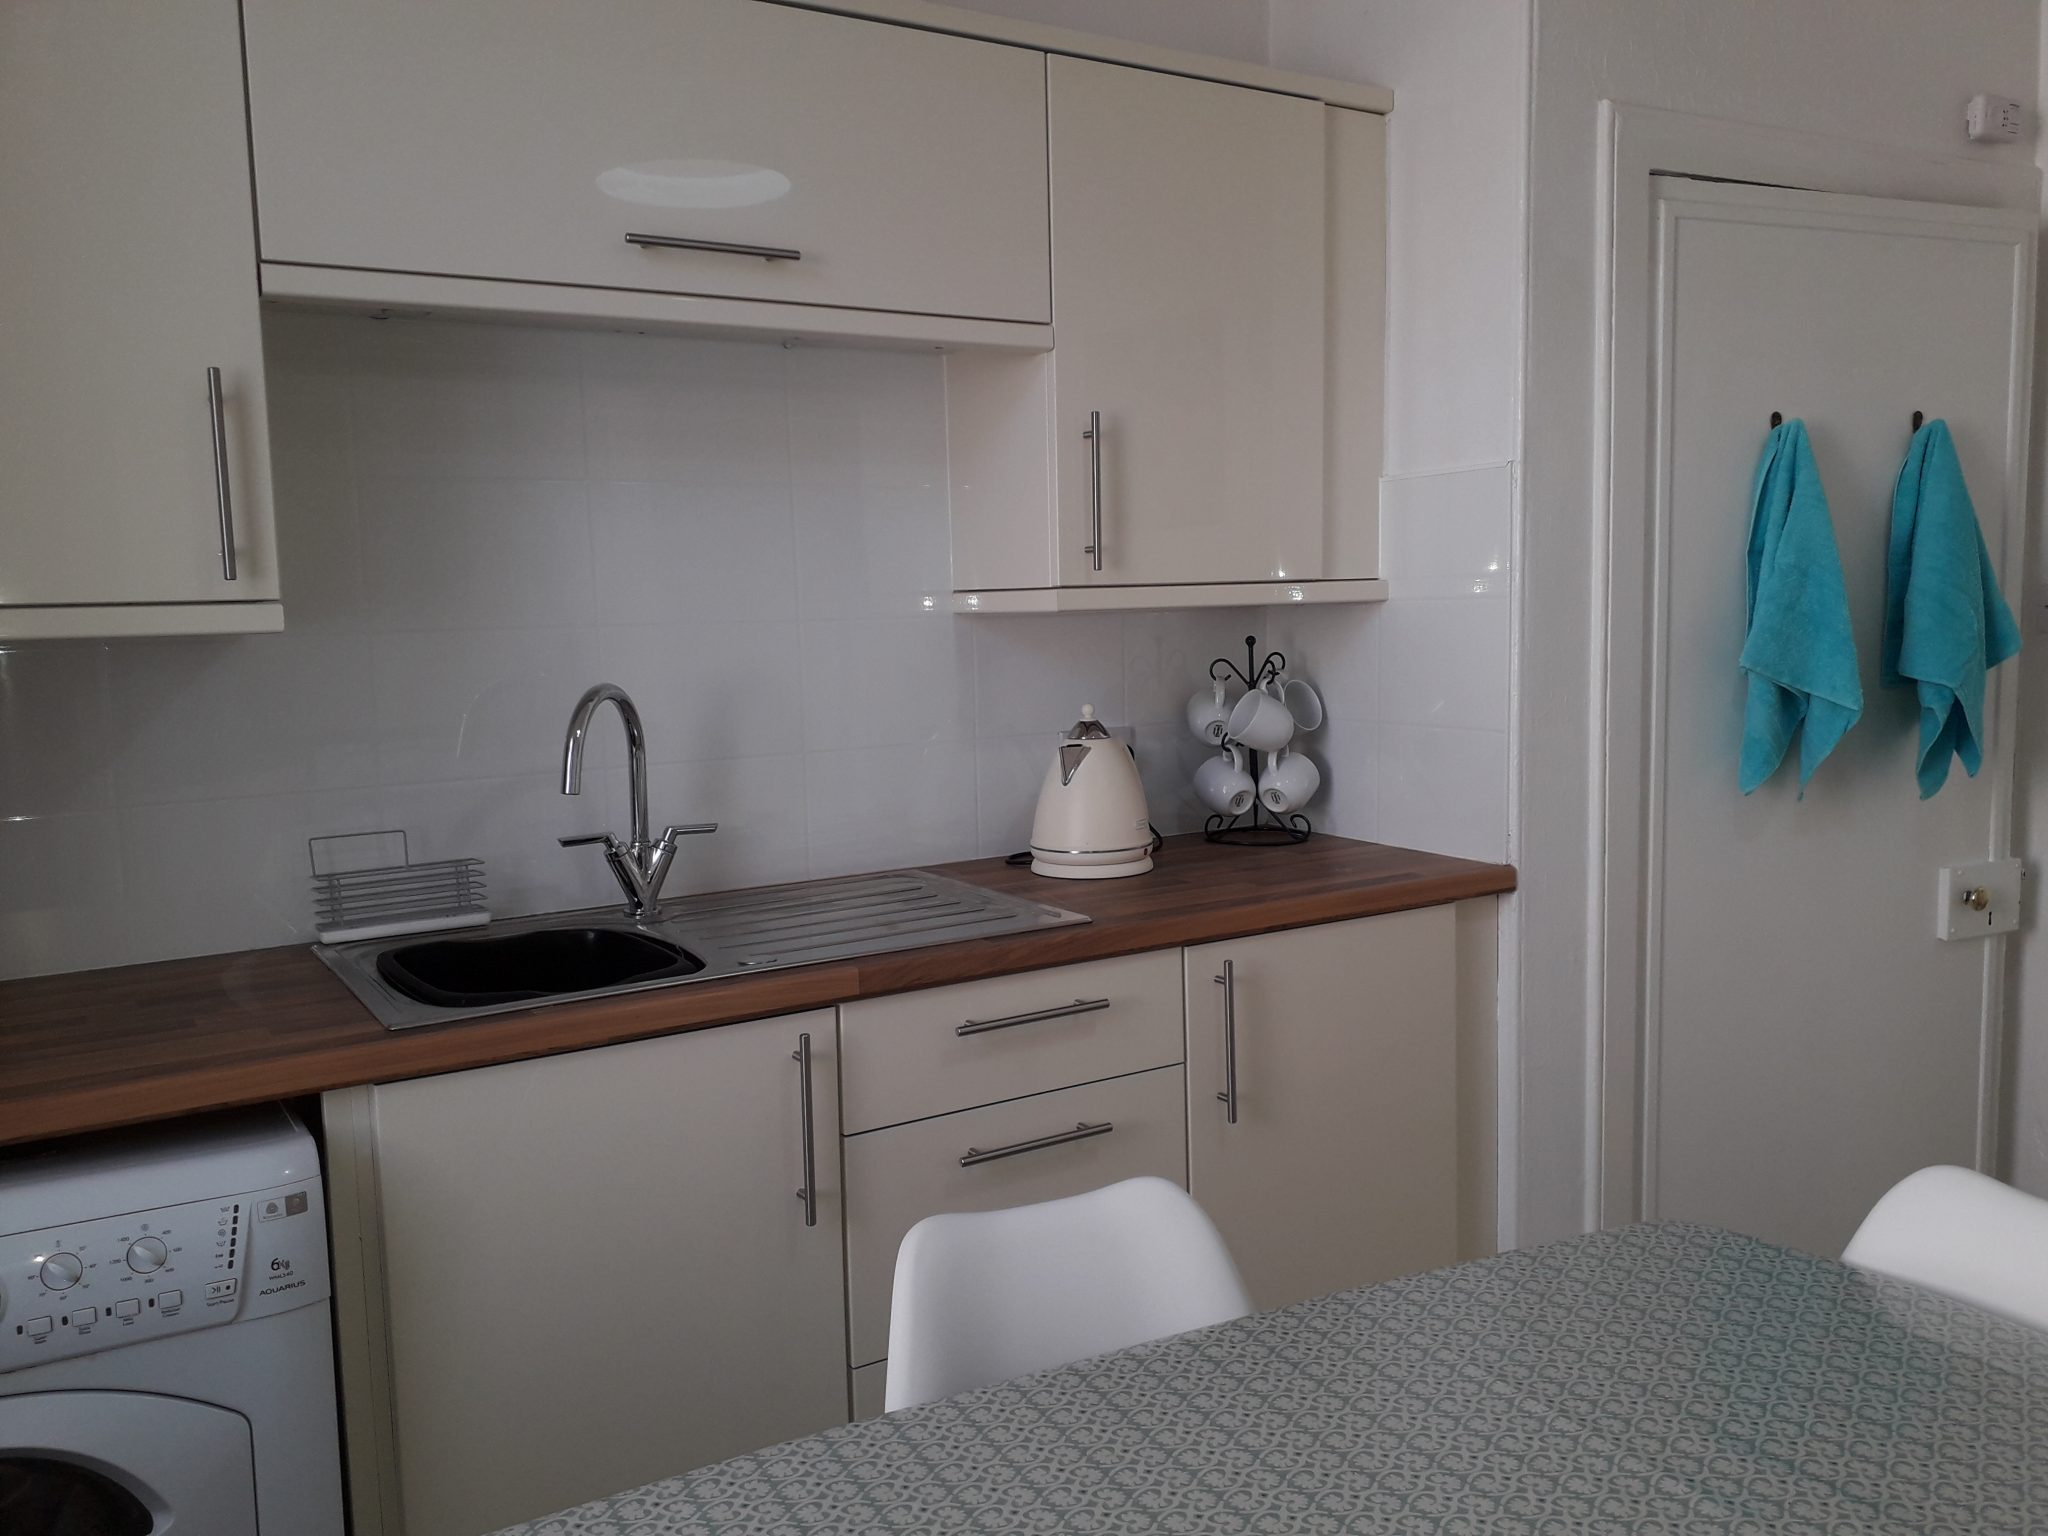 Kitchen with sink,units, table and chairs